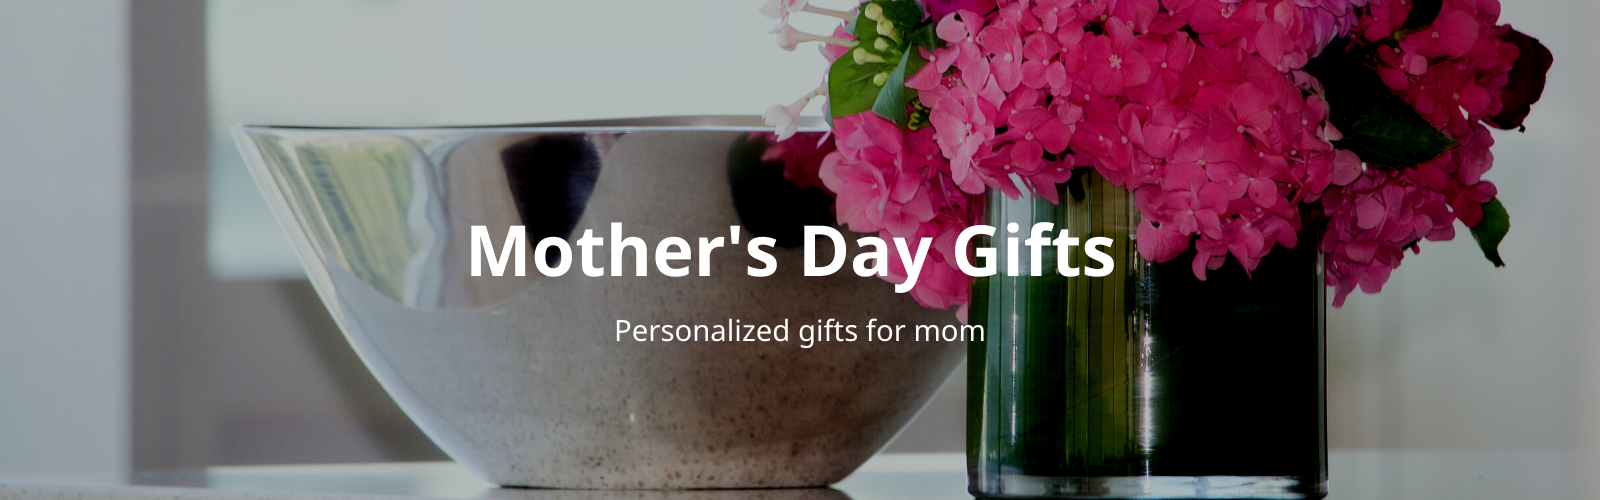 Shop Mother's Day Gifts From Crystal Prints